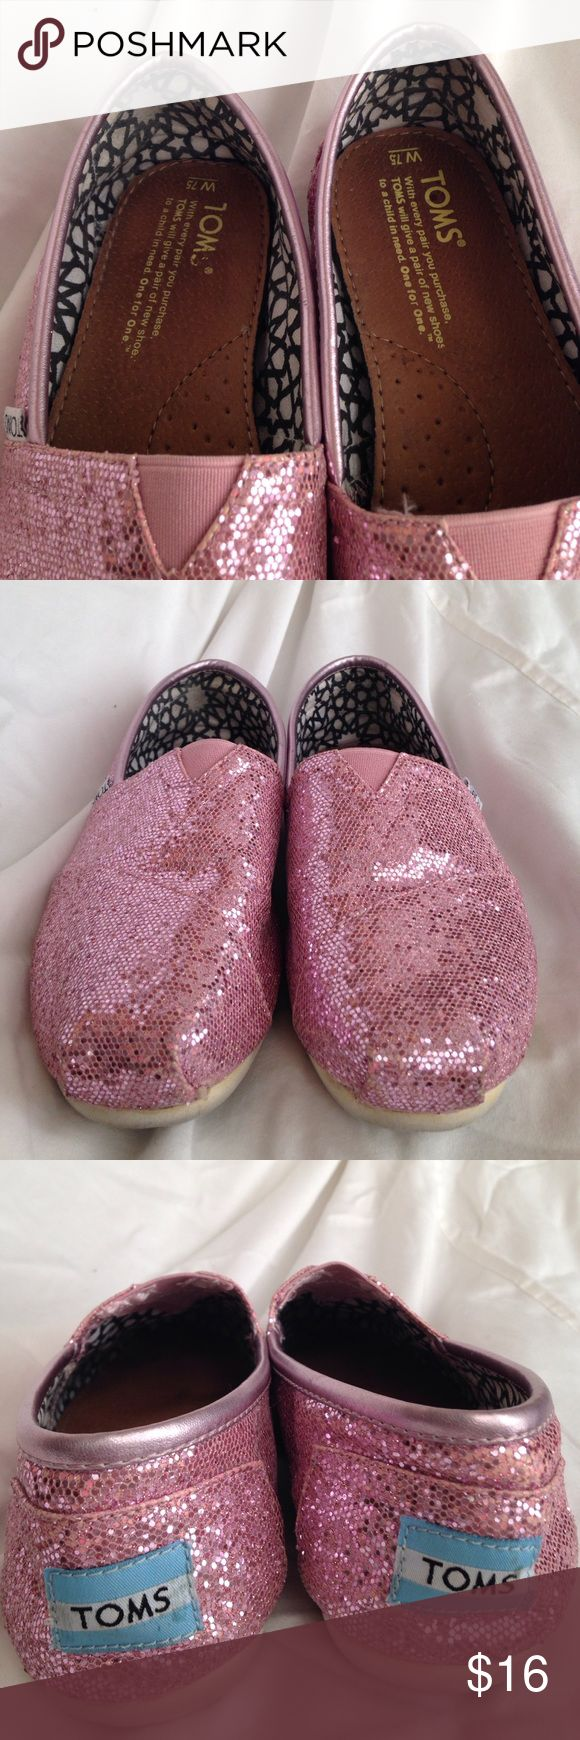 Sparkly Pink Toms These sparkly pink Toms are a size 7.5 and have been worn only a handful of times. Some sparkle bald spots on back of shoes and front as you can see in the pictures. Inside shows barely any wear, lots of life left! Toms Shoes Flats & Loafers